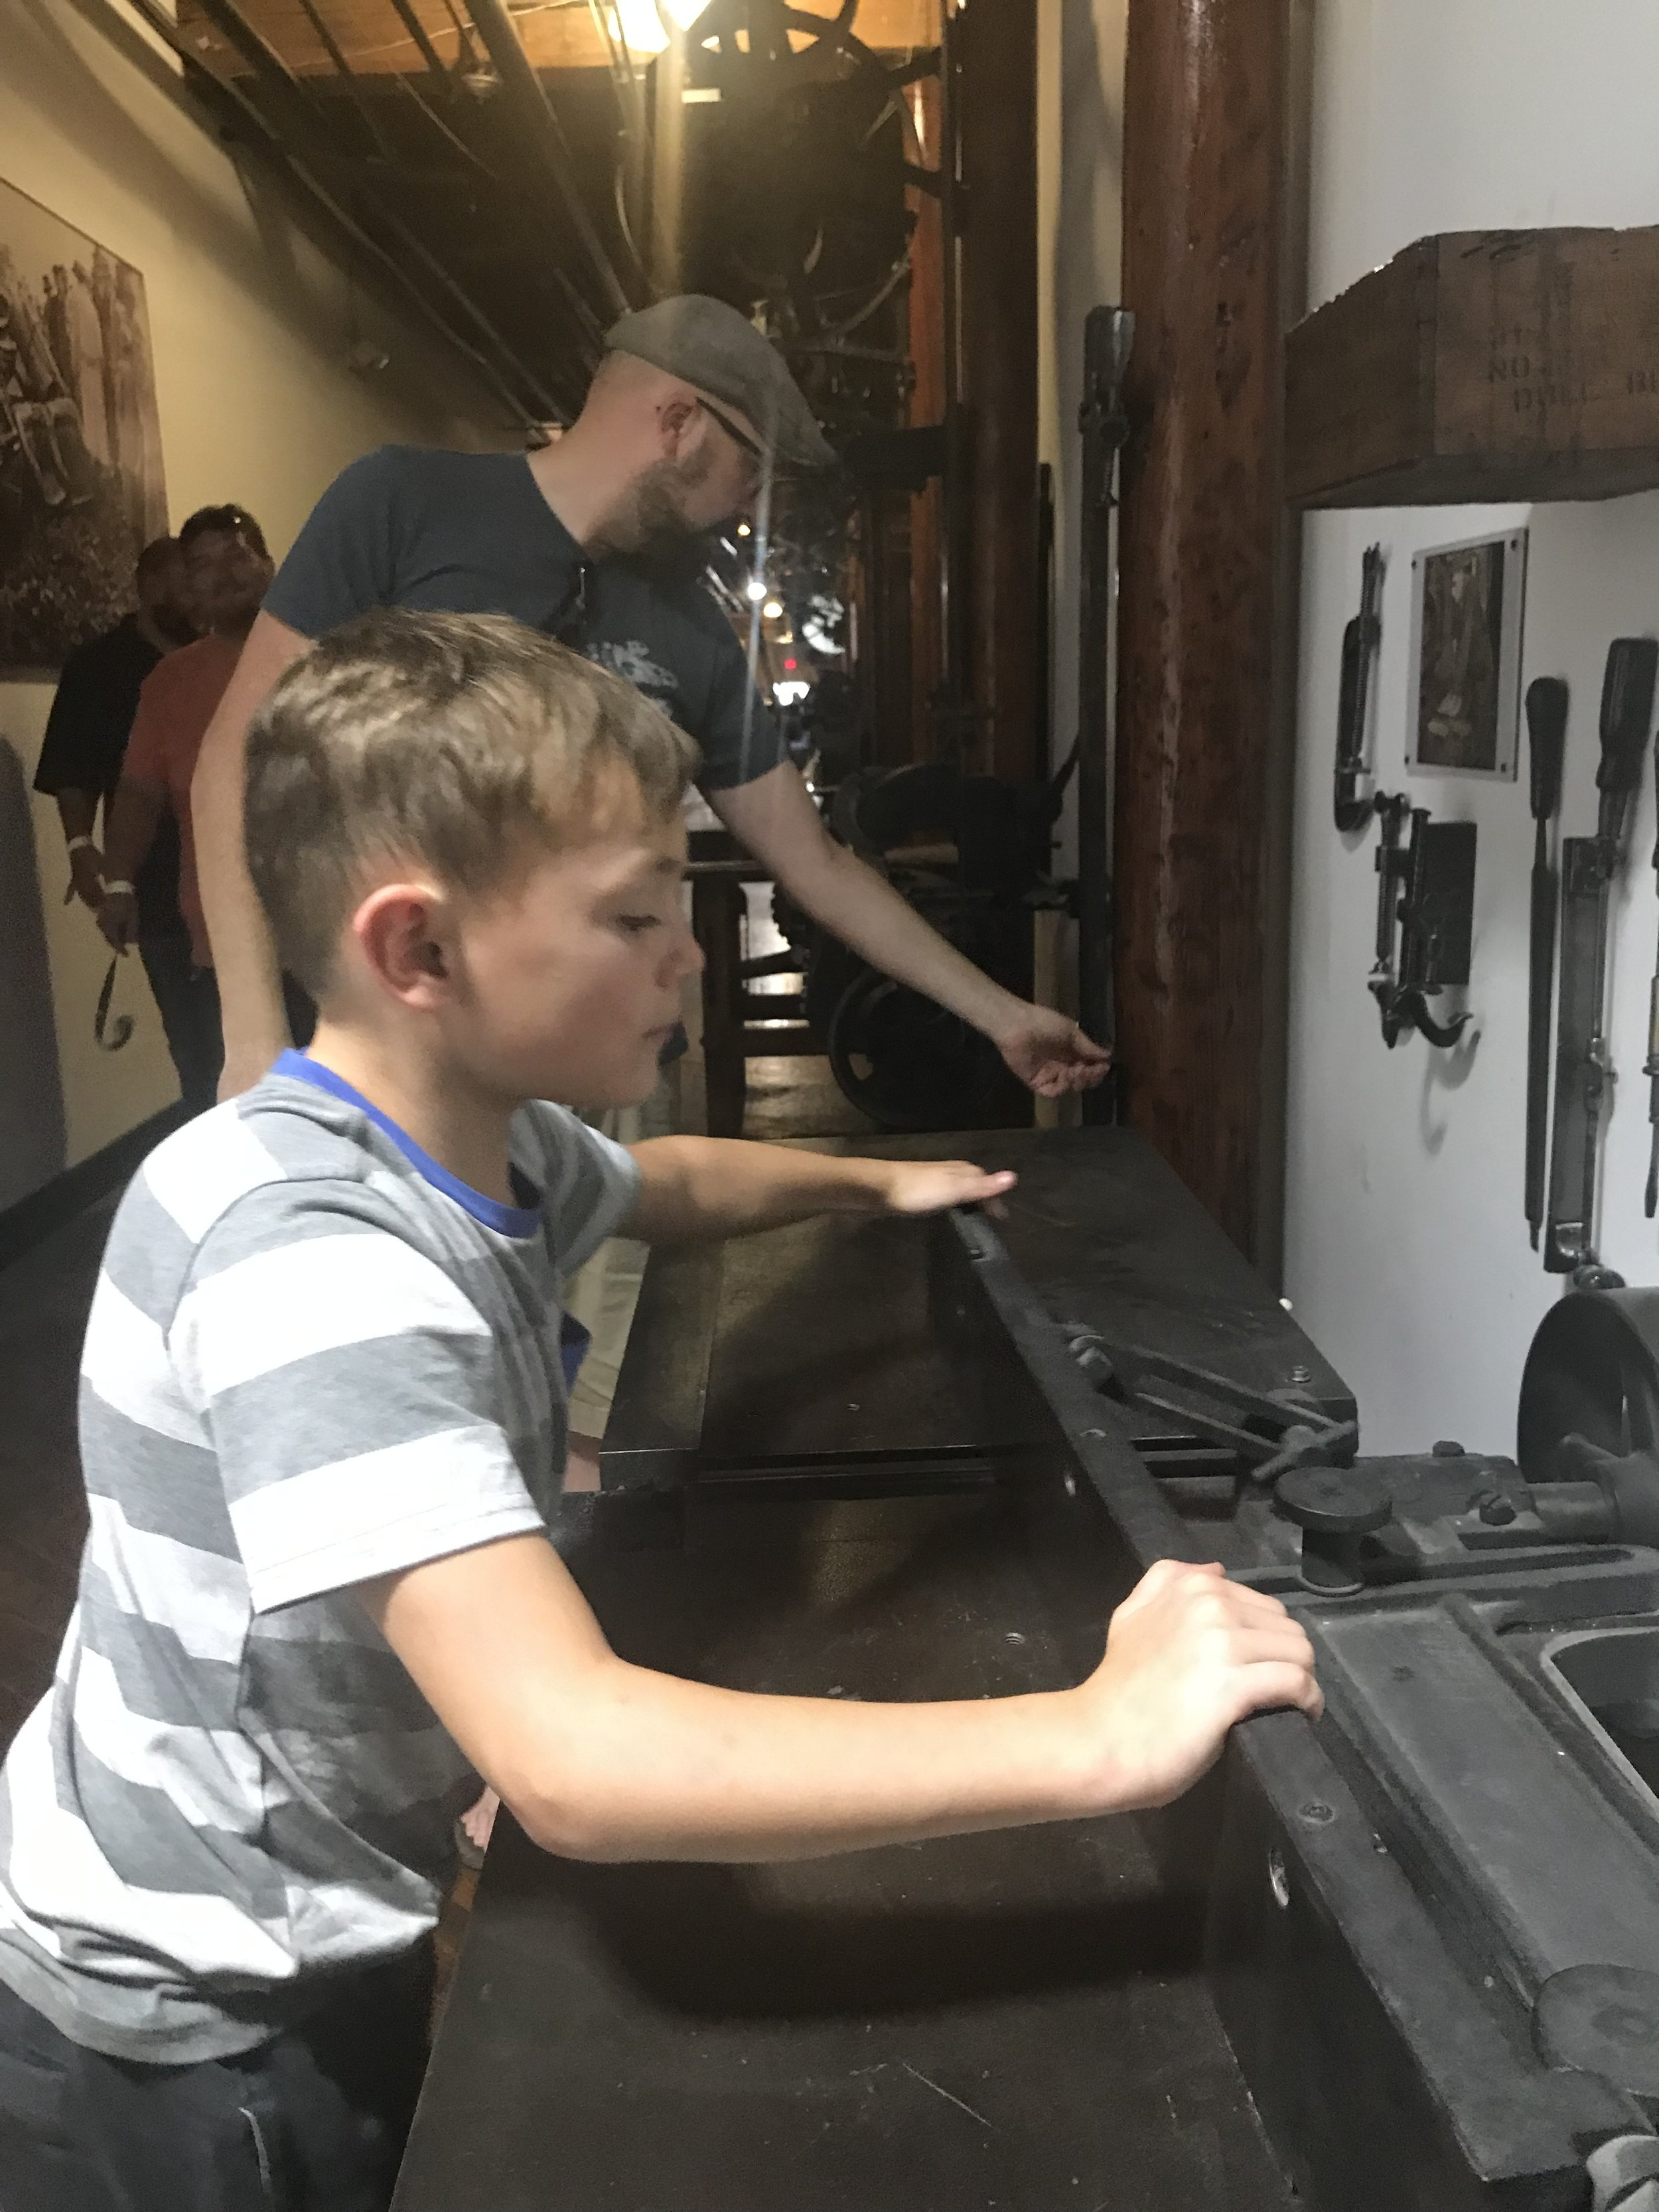 Great Kid Friendly Places to Visit in Nashville you can find cool tools and artifacts in the Marathon building with Antique Archaeology